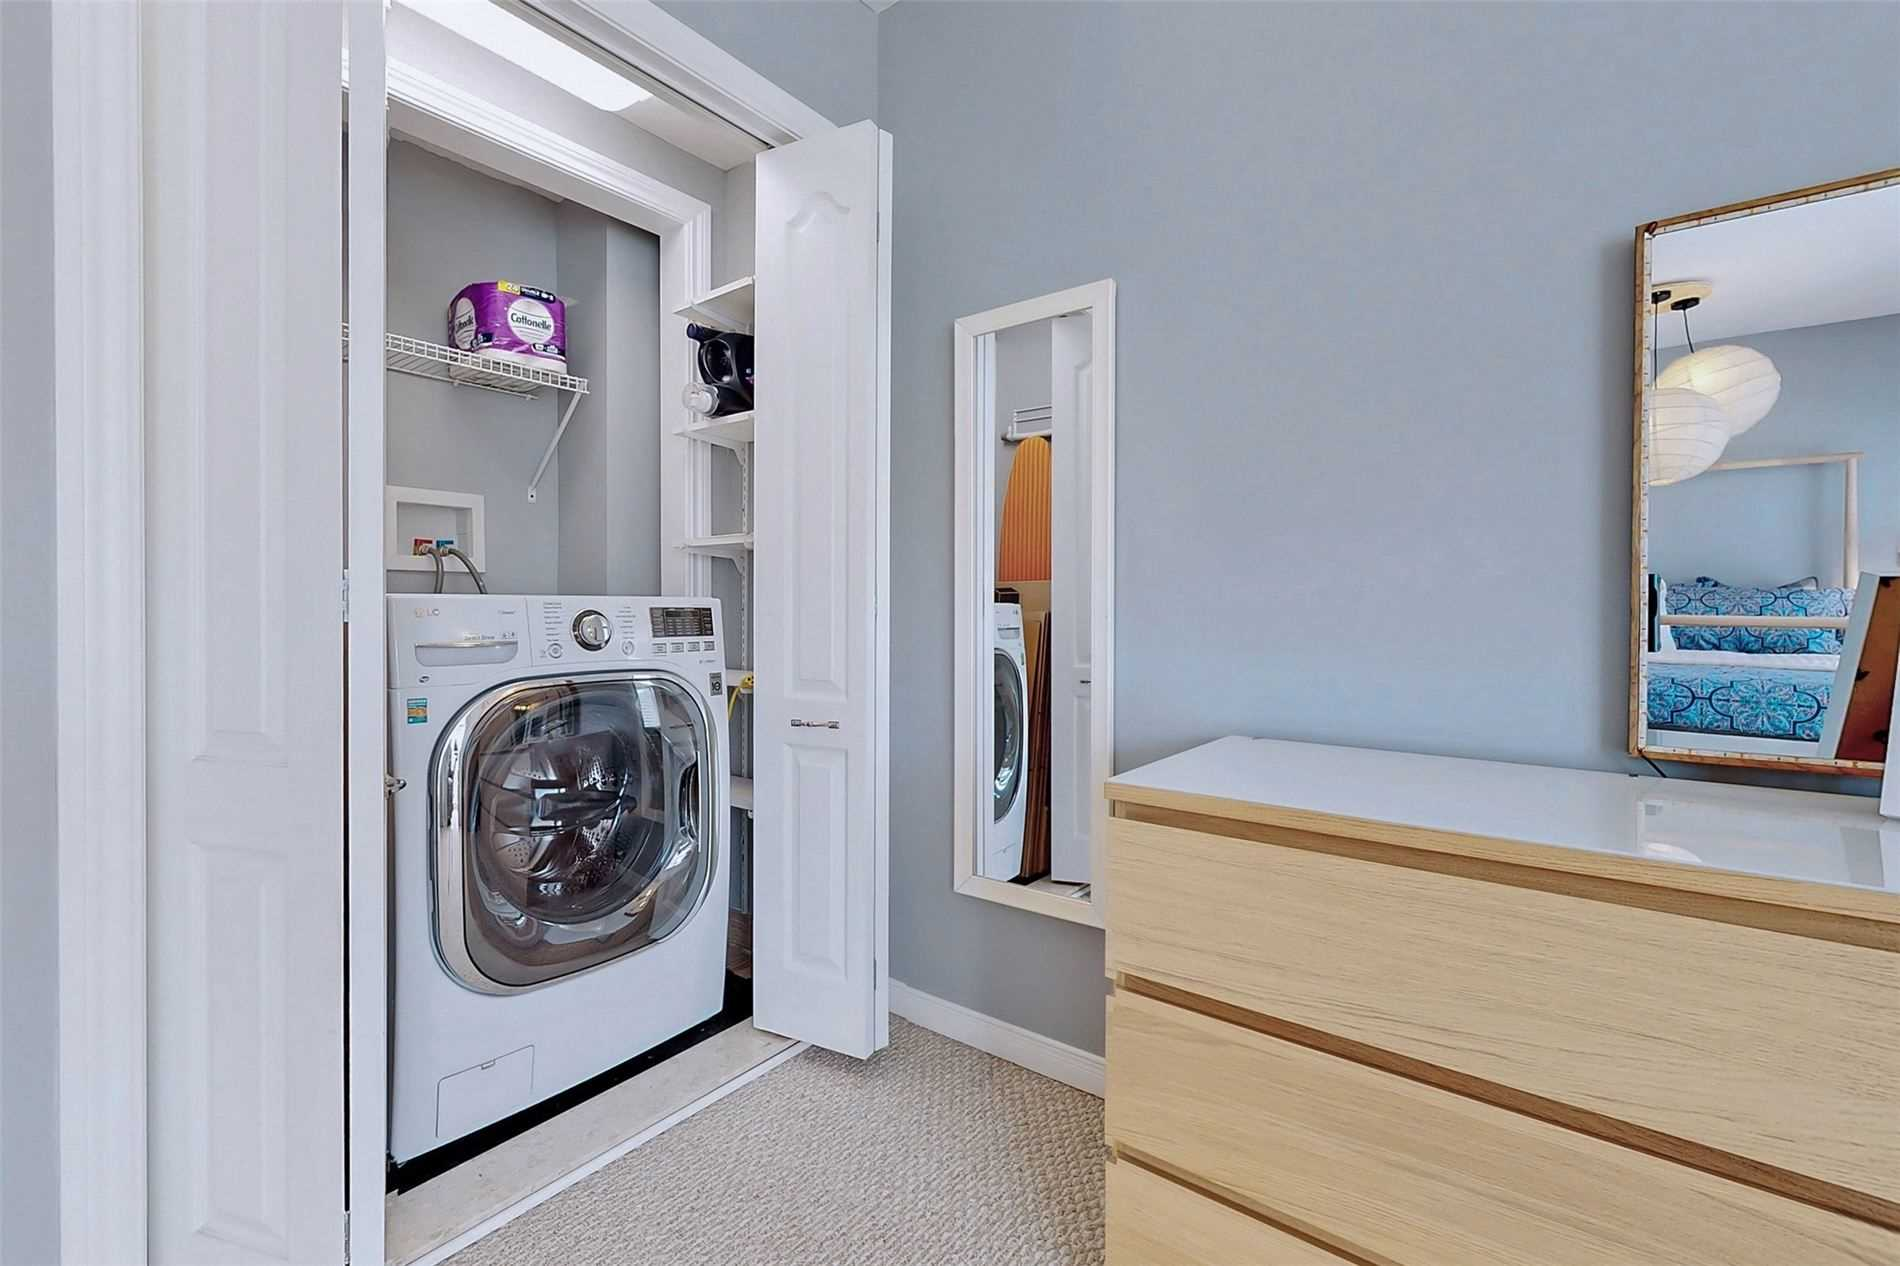 Image 25 of 40 showing inside of 3 Bedroom Condo Townhouse 3-Storey for Sale at 14 Cumberland Lane Unit# 7, Ajax L1S7K4